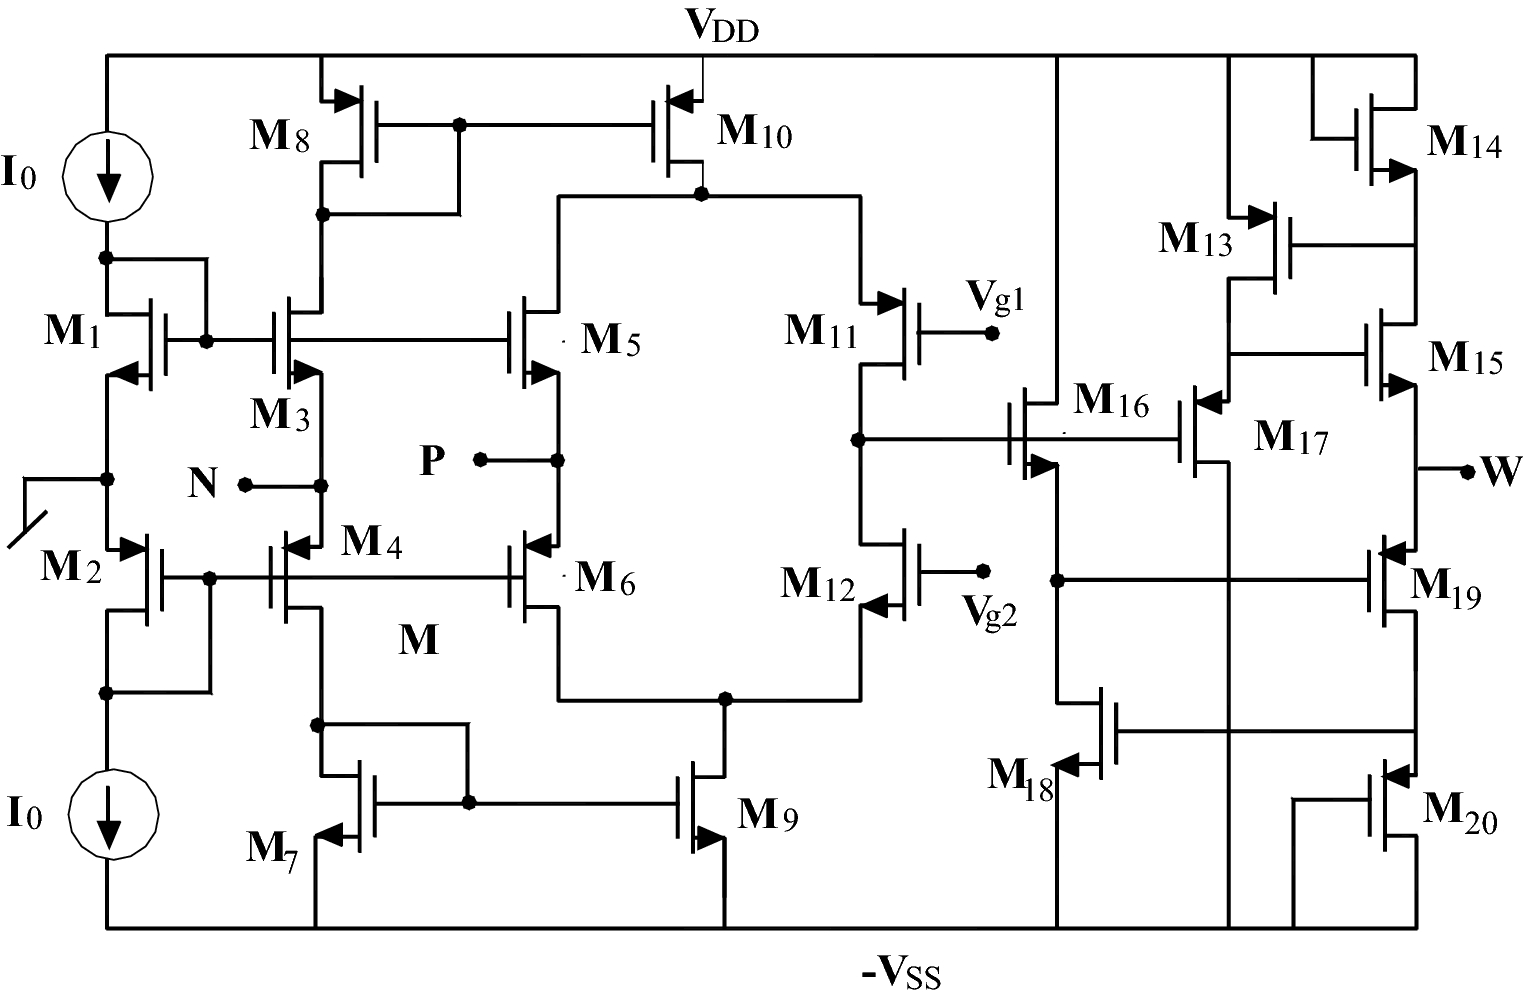 Otra Its Implementations And Applications A State Of The Art Bistable Circuit Diagram Composed 555 Basiccircuit Open Image In New Window